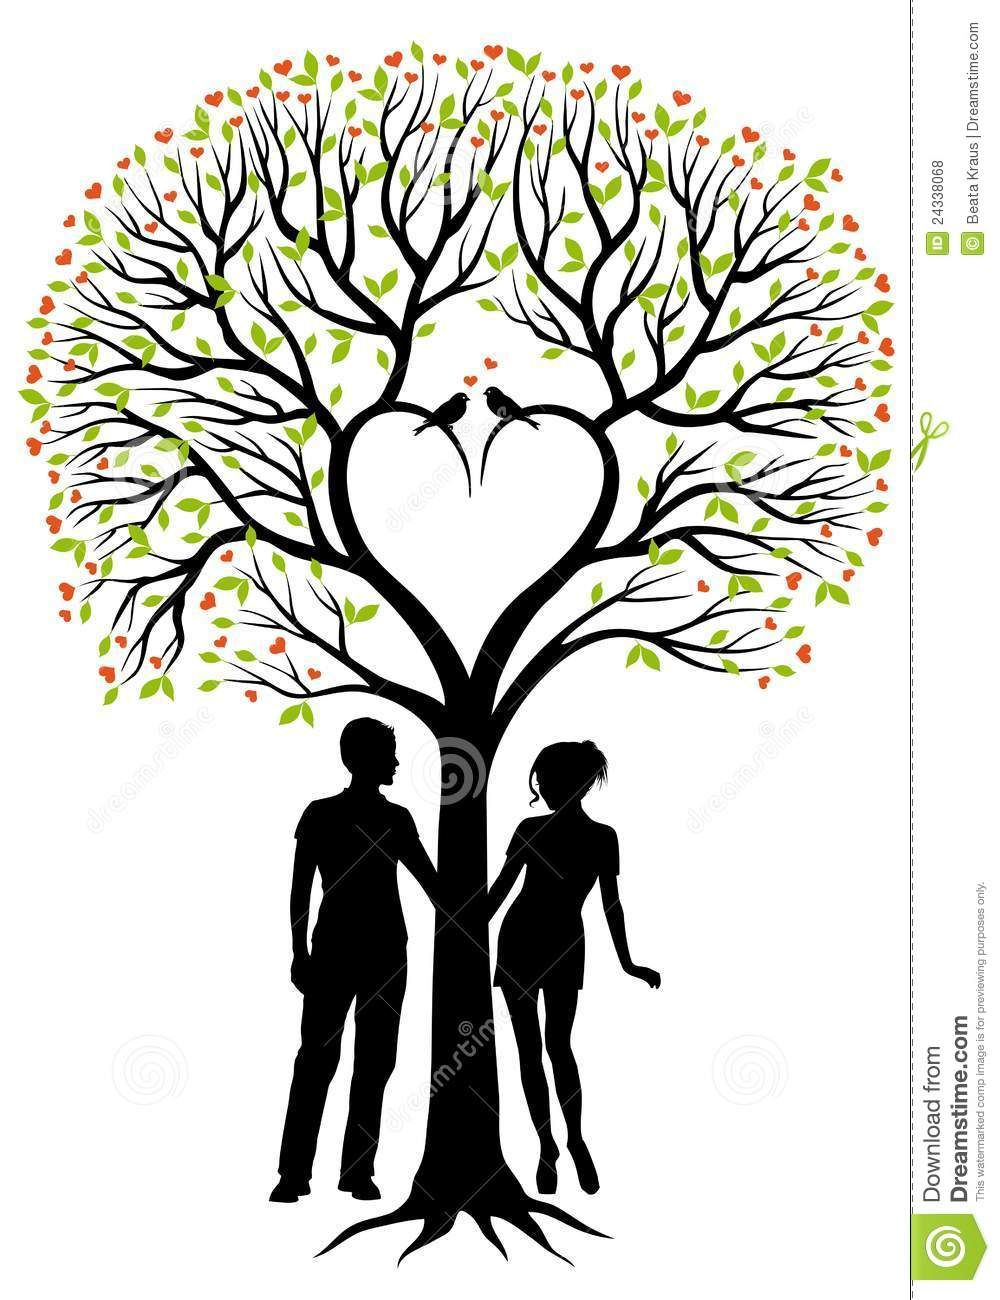 17 Best images about Genealogy and Family Tree on Pinterest ...